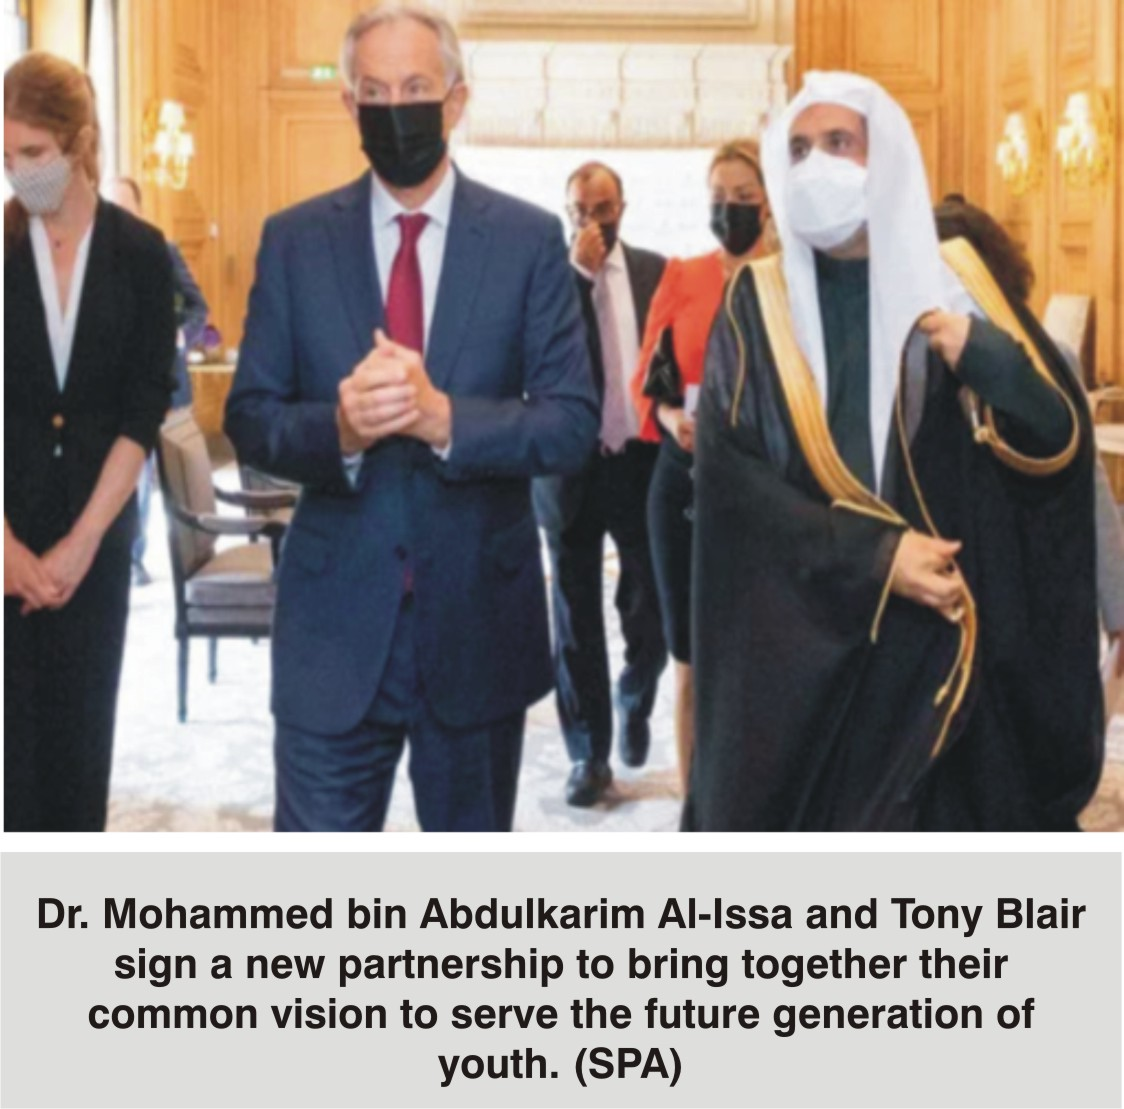 Muslim World League, Tony Blair  Institute for Global Change sign deal  to Empower 100,000 Young People